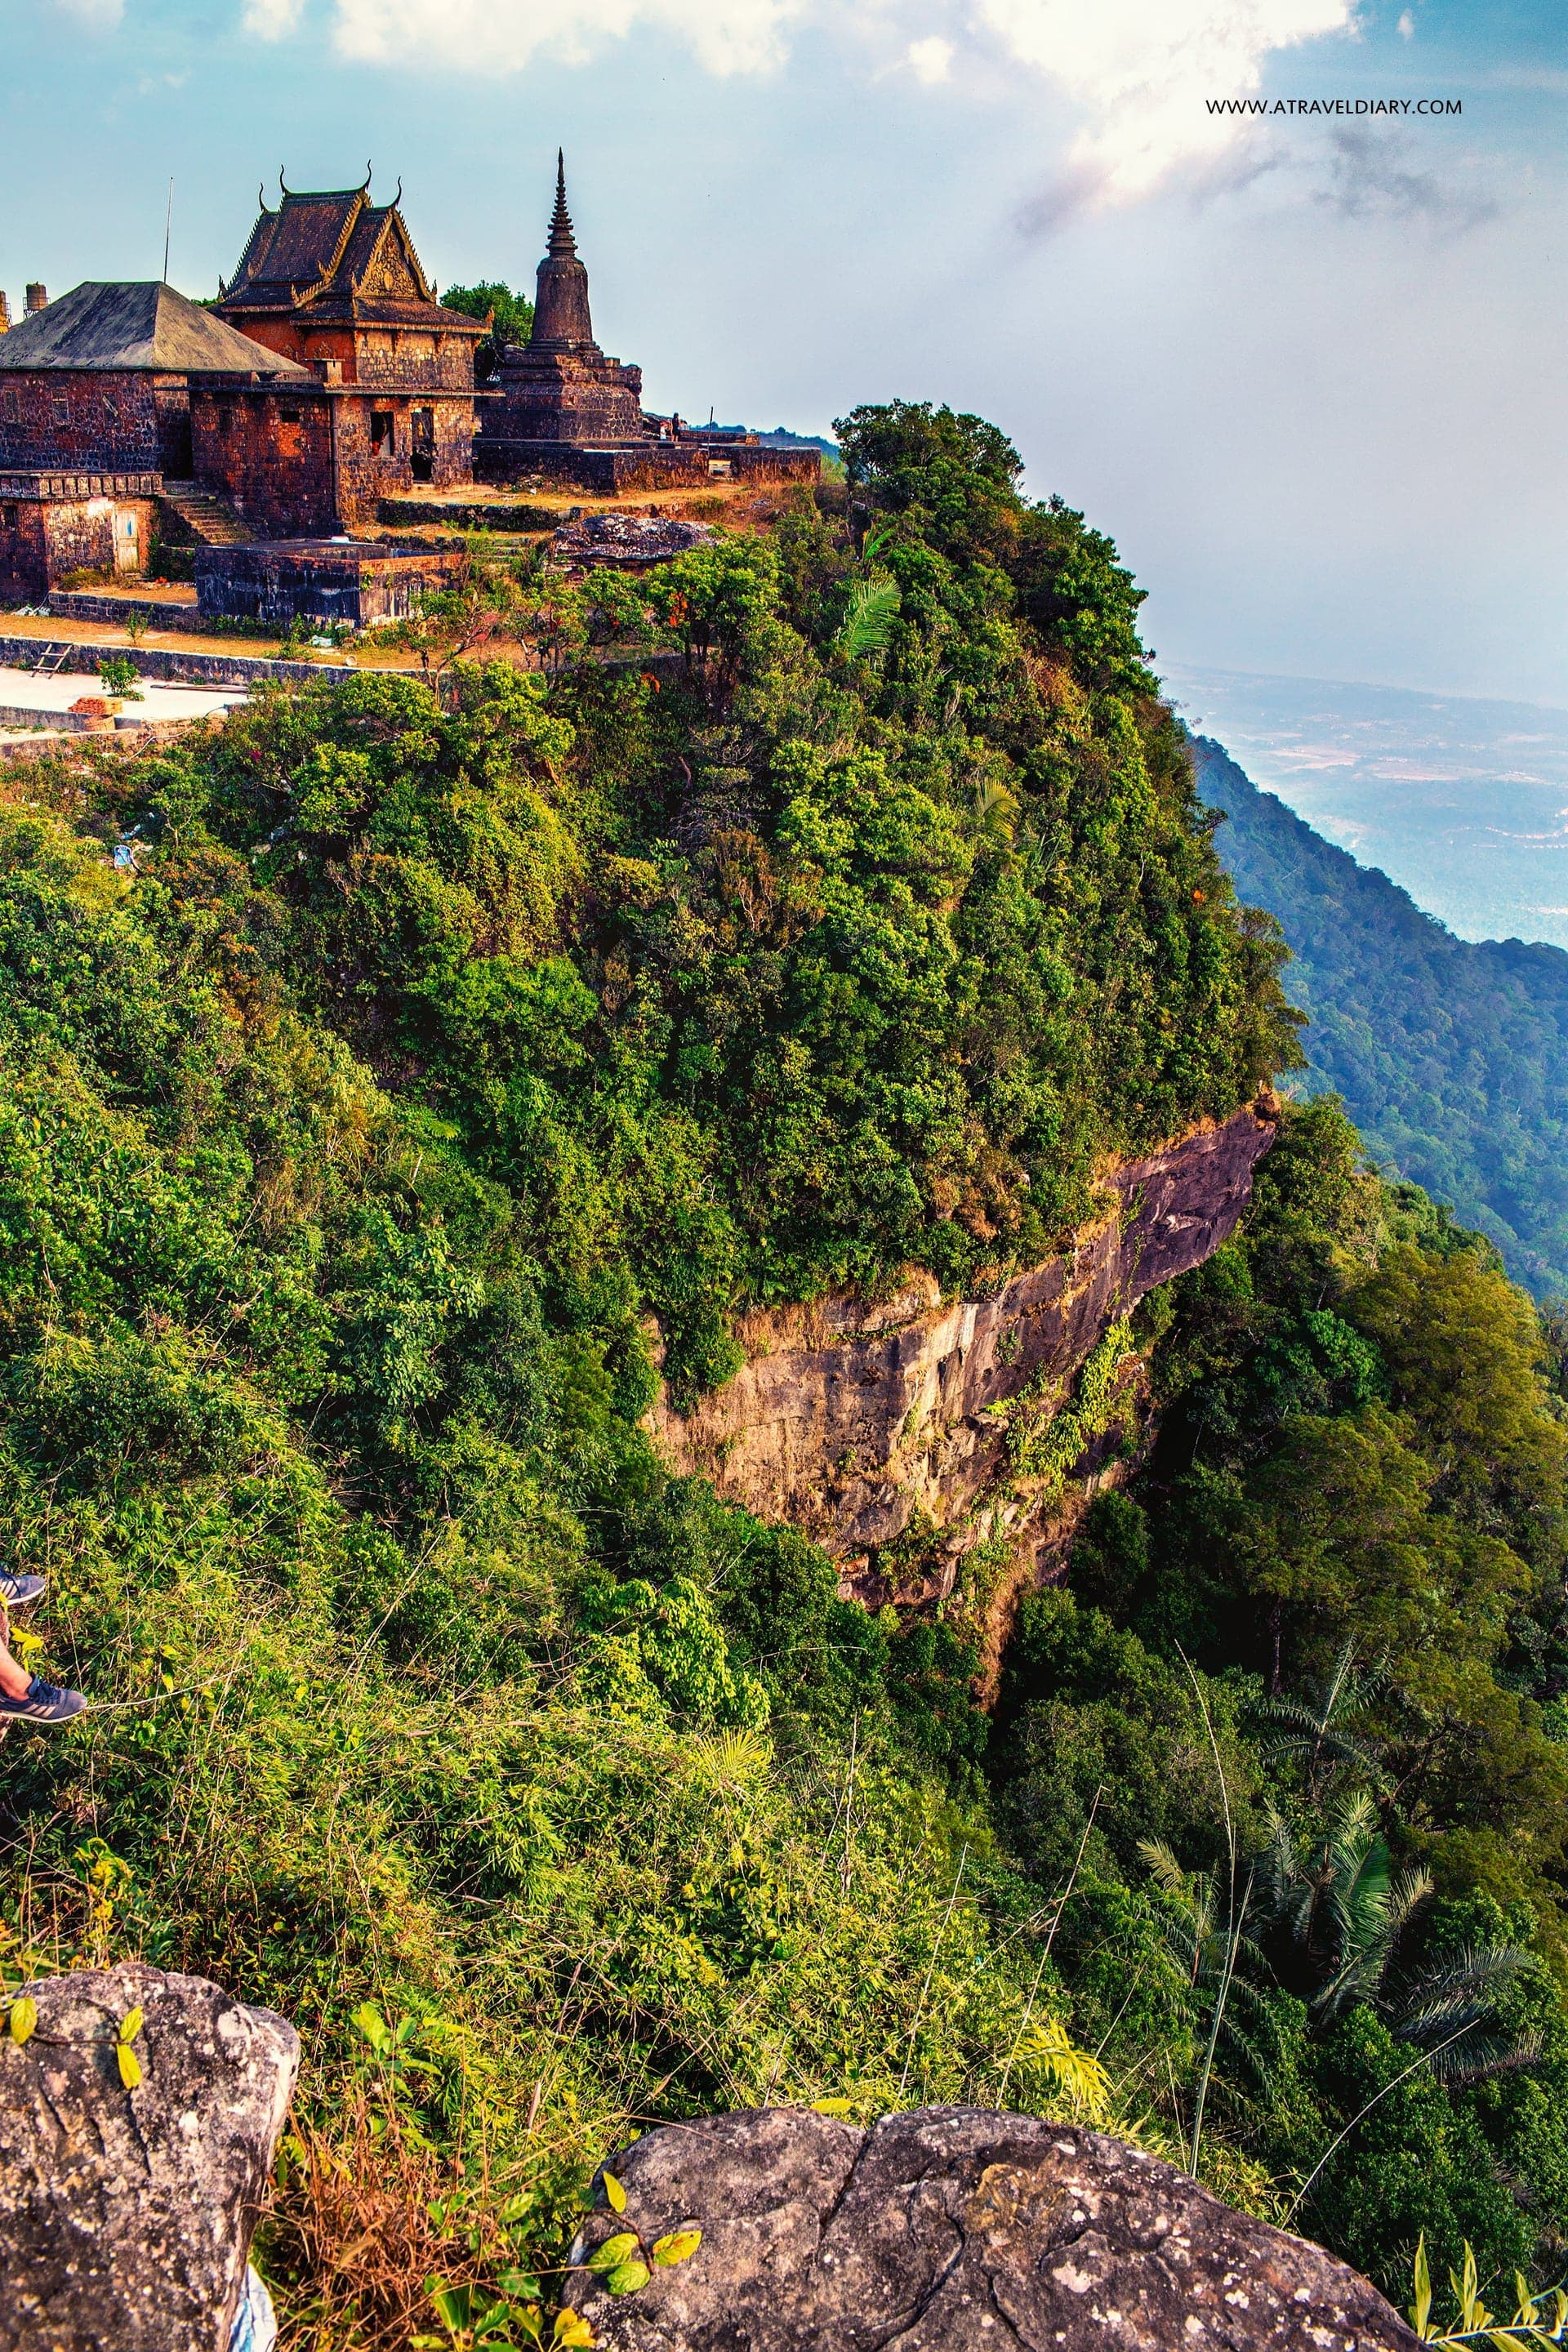 Outtyeancheat Preah Monivong Bokor or Phnom Bokor National Park Kampot Cambodia